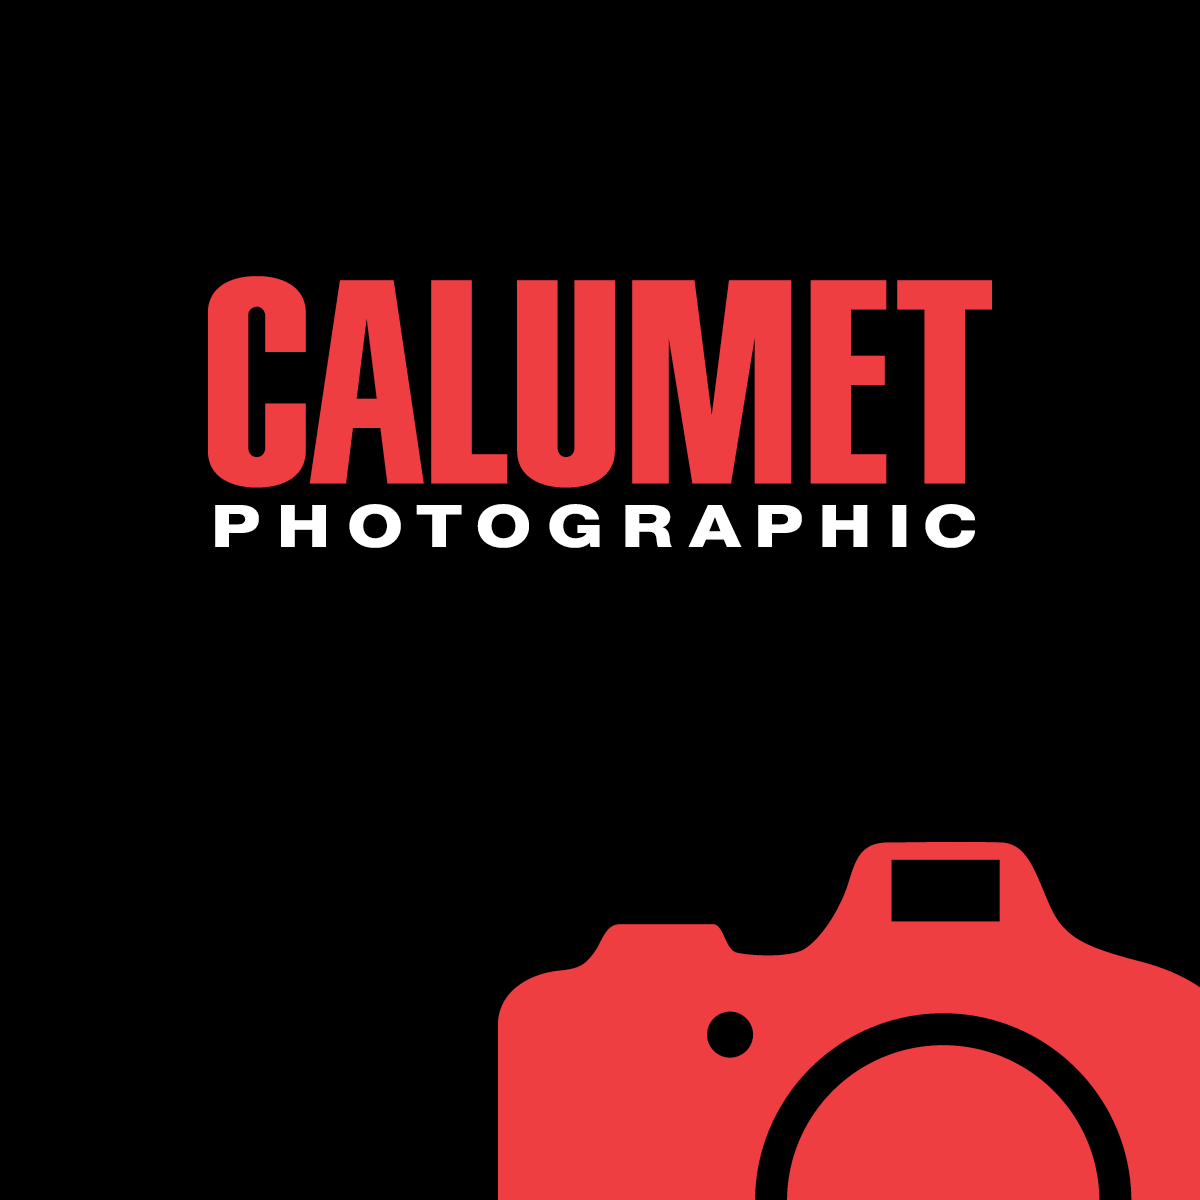 CALUMET PHOTOGRAPHIC, INC.